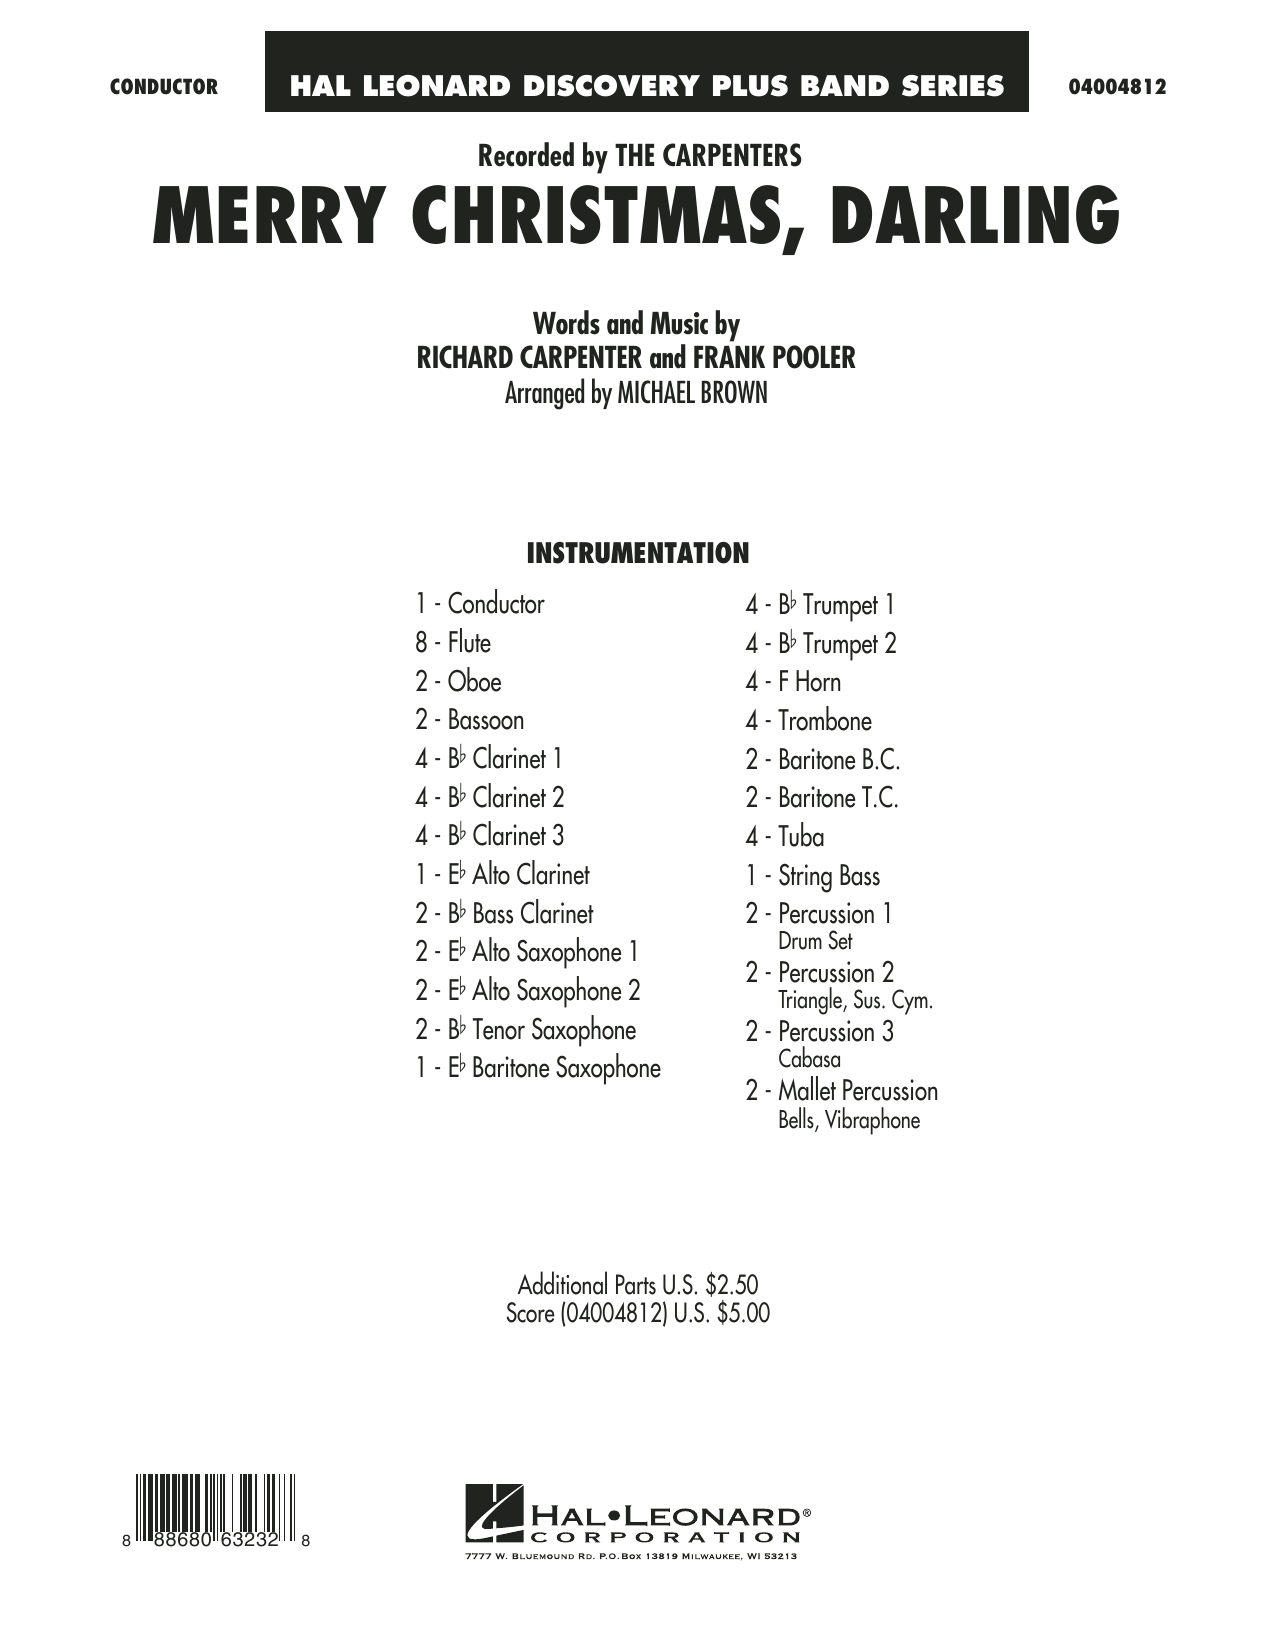 The Carpenters - Merry Christmas, Darling - Conductor Score (Full Score)